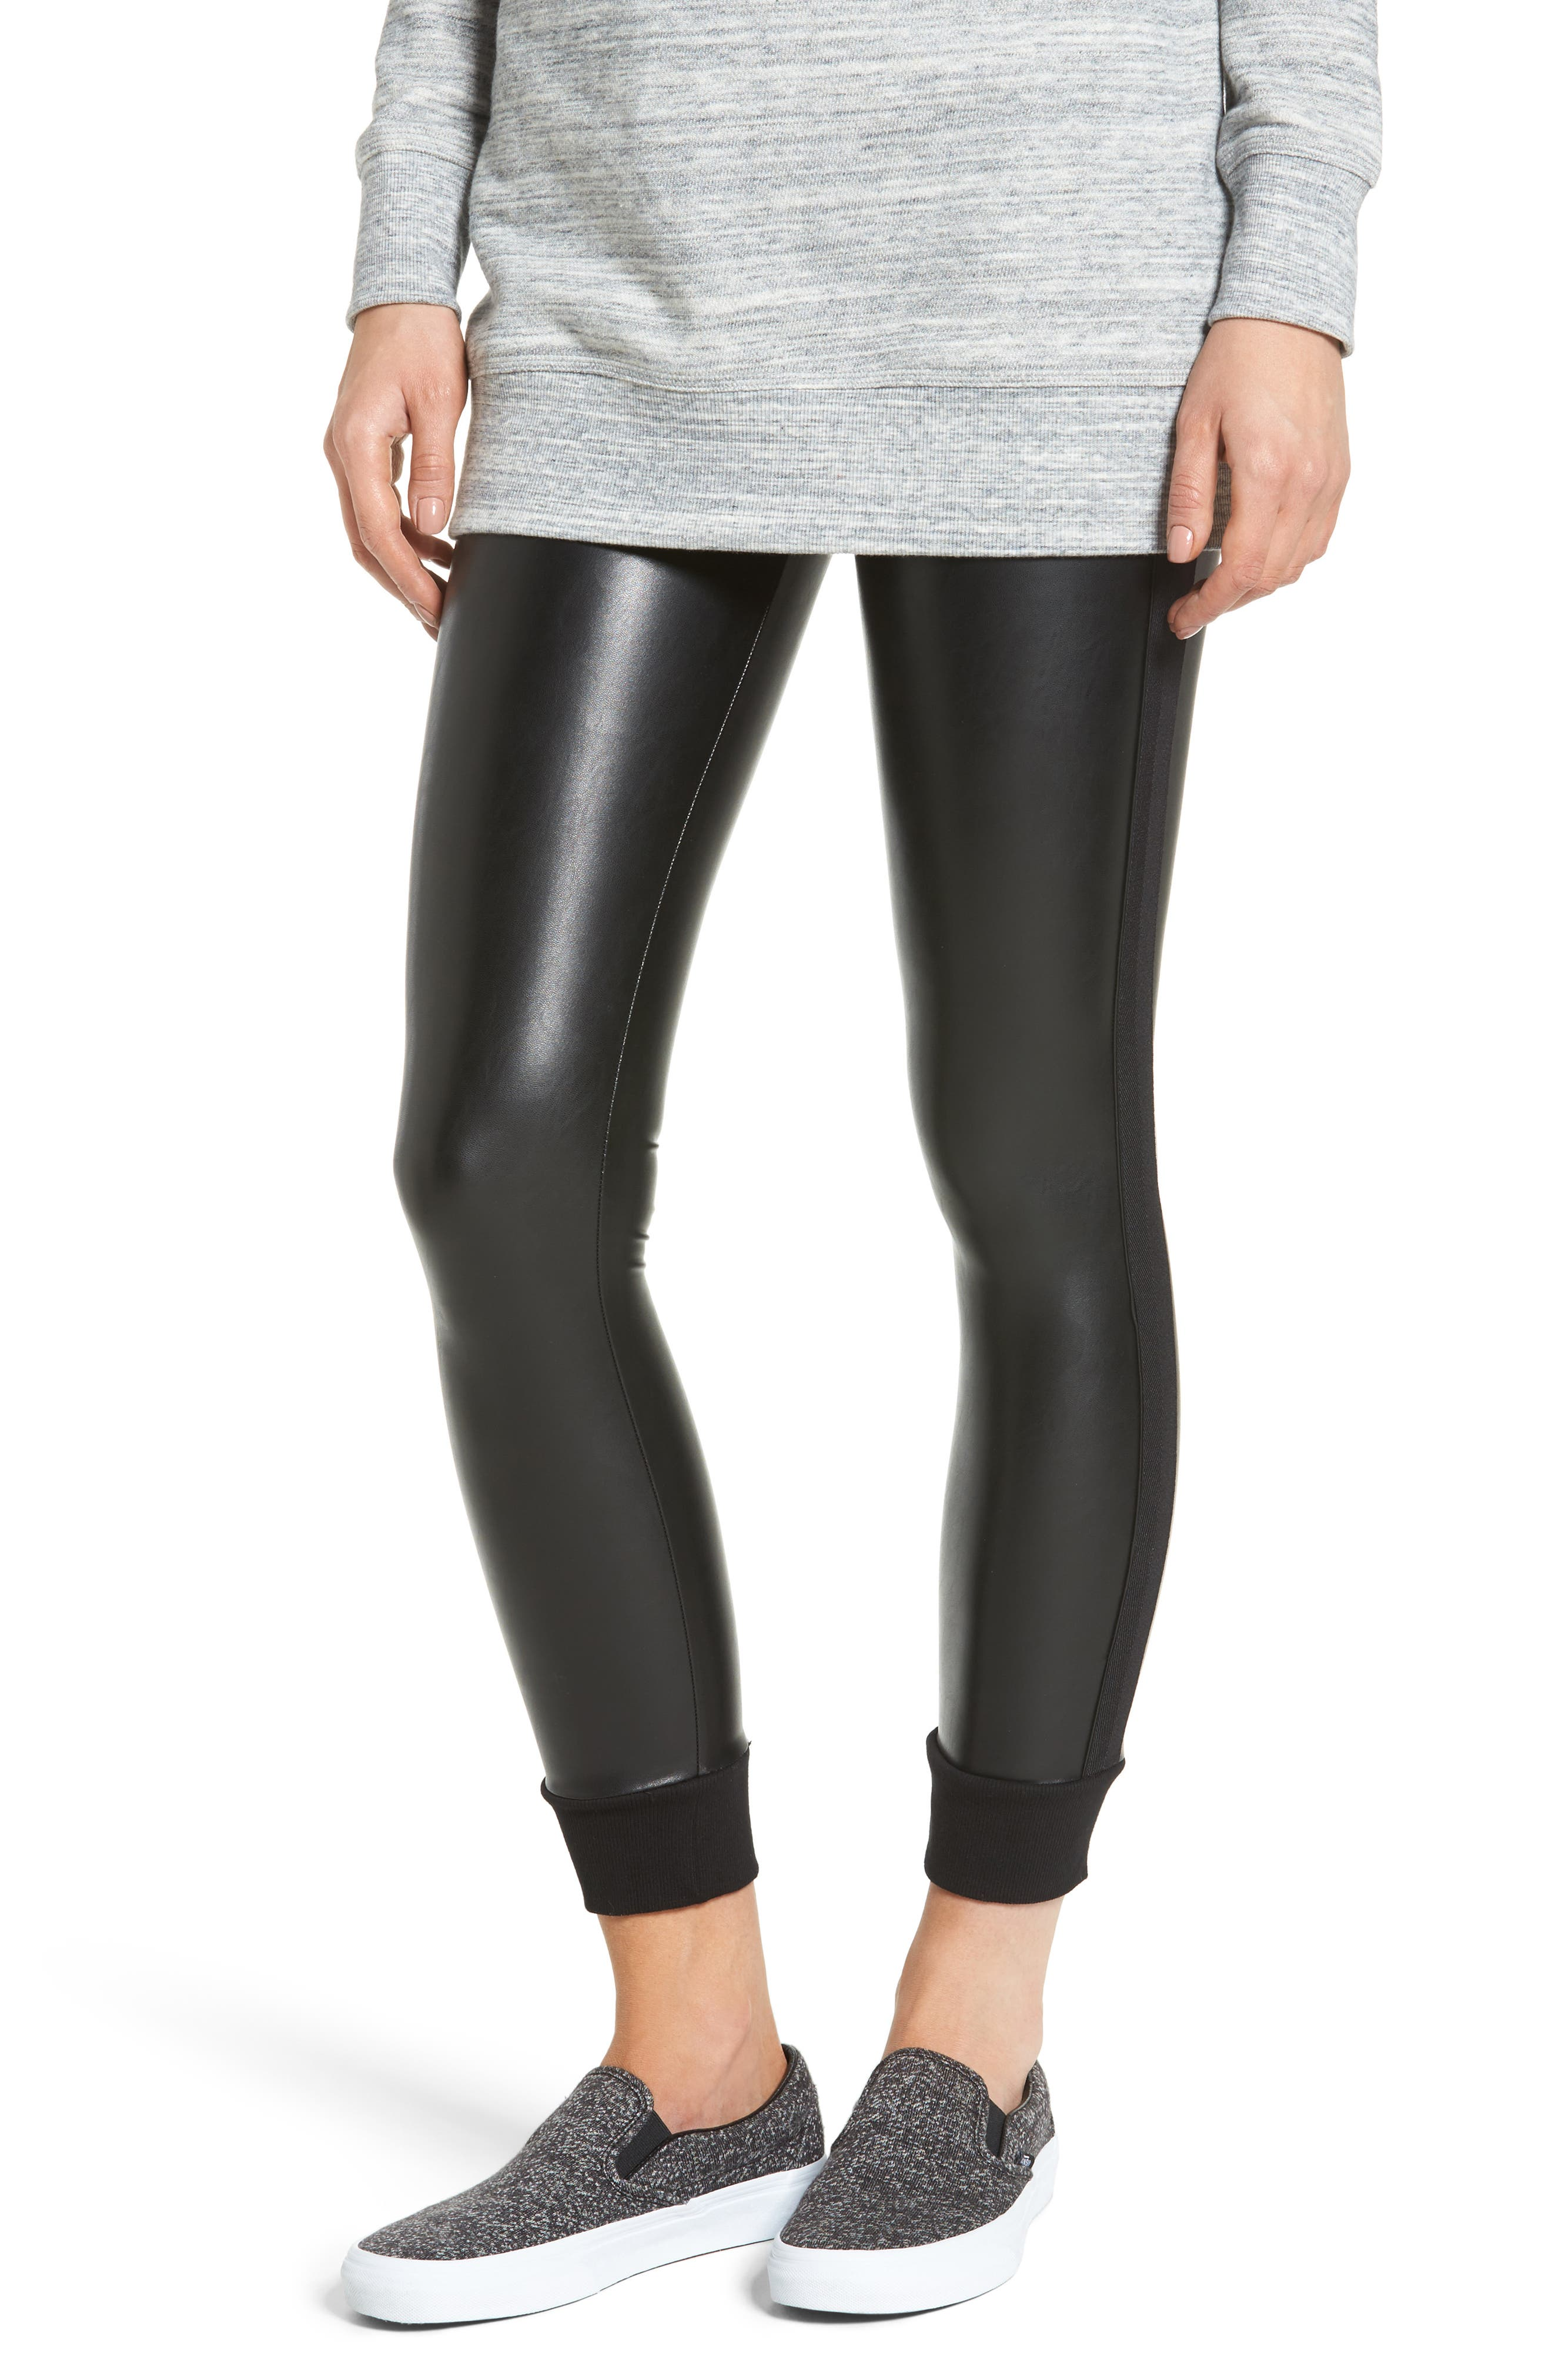 David Lerner Cuffed Faux Leather Leggings